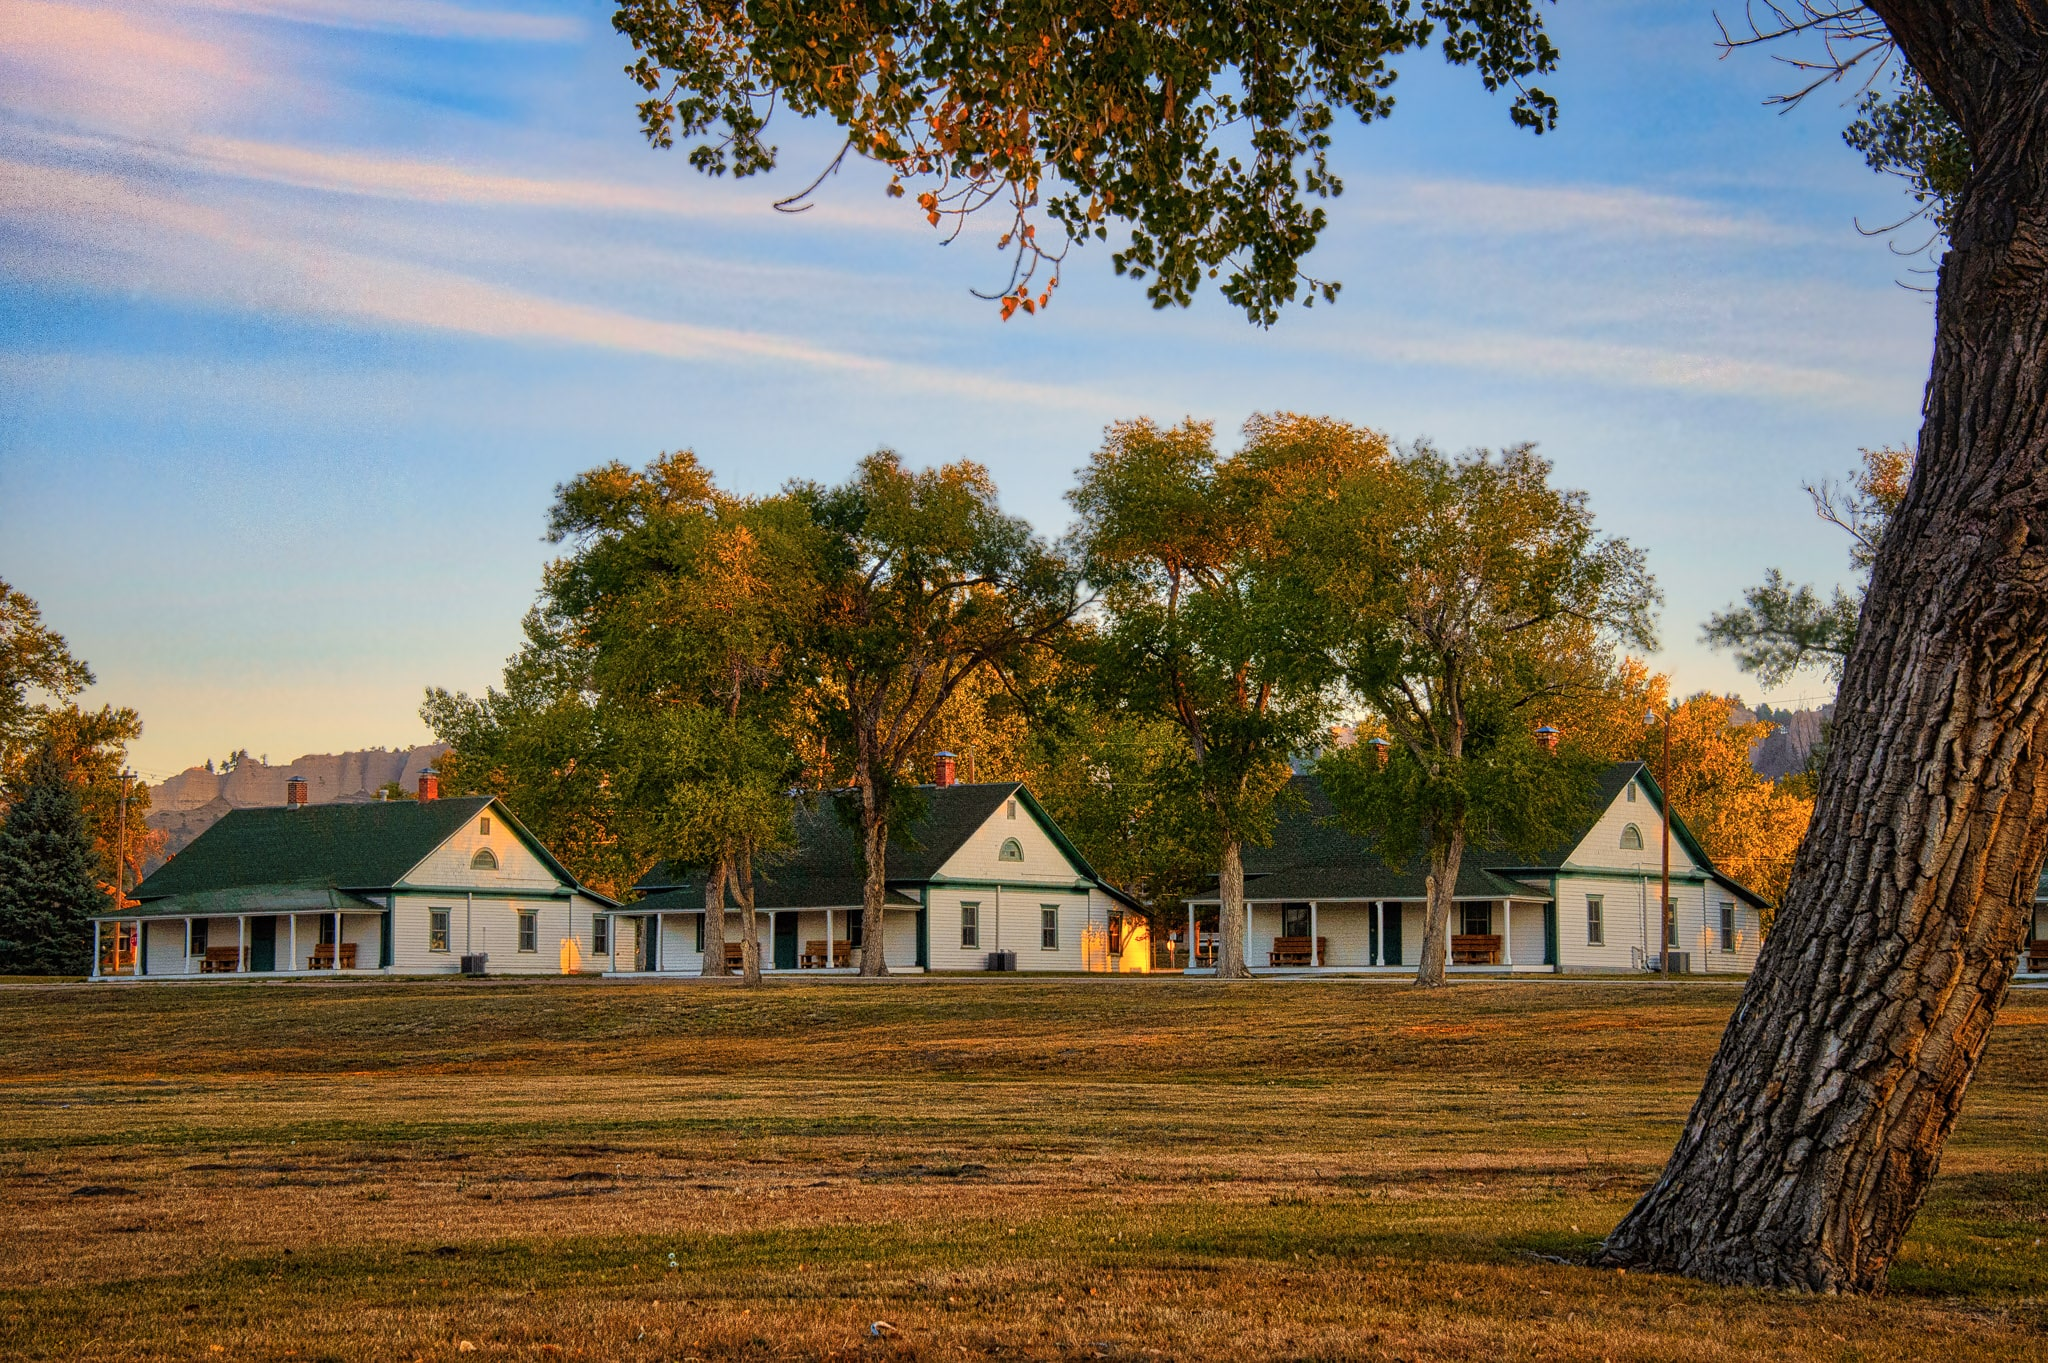 These clapboard cabins line one of the streets in Fort Robinson State Park. In the foreground is an ancient Cottonwood tree.